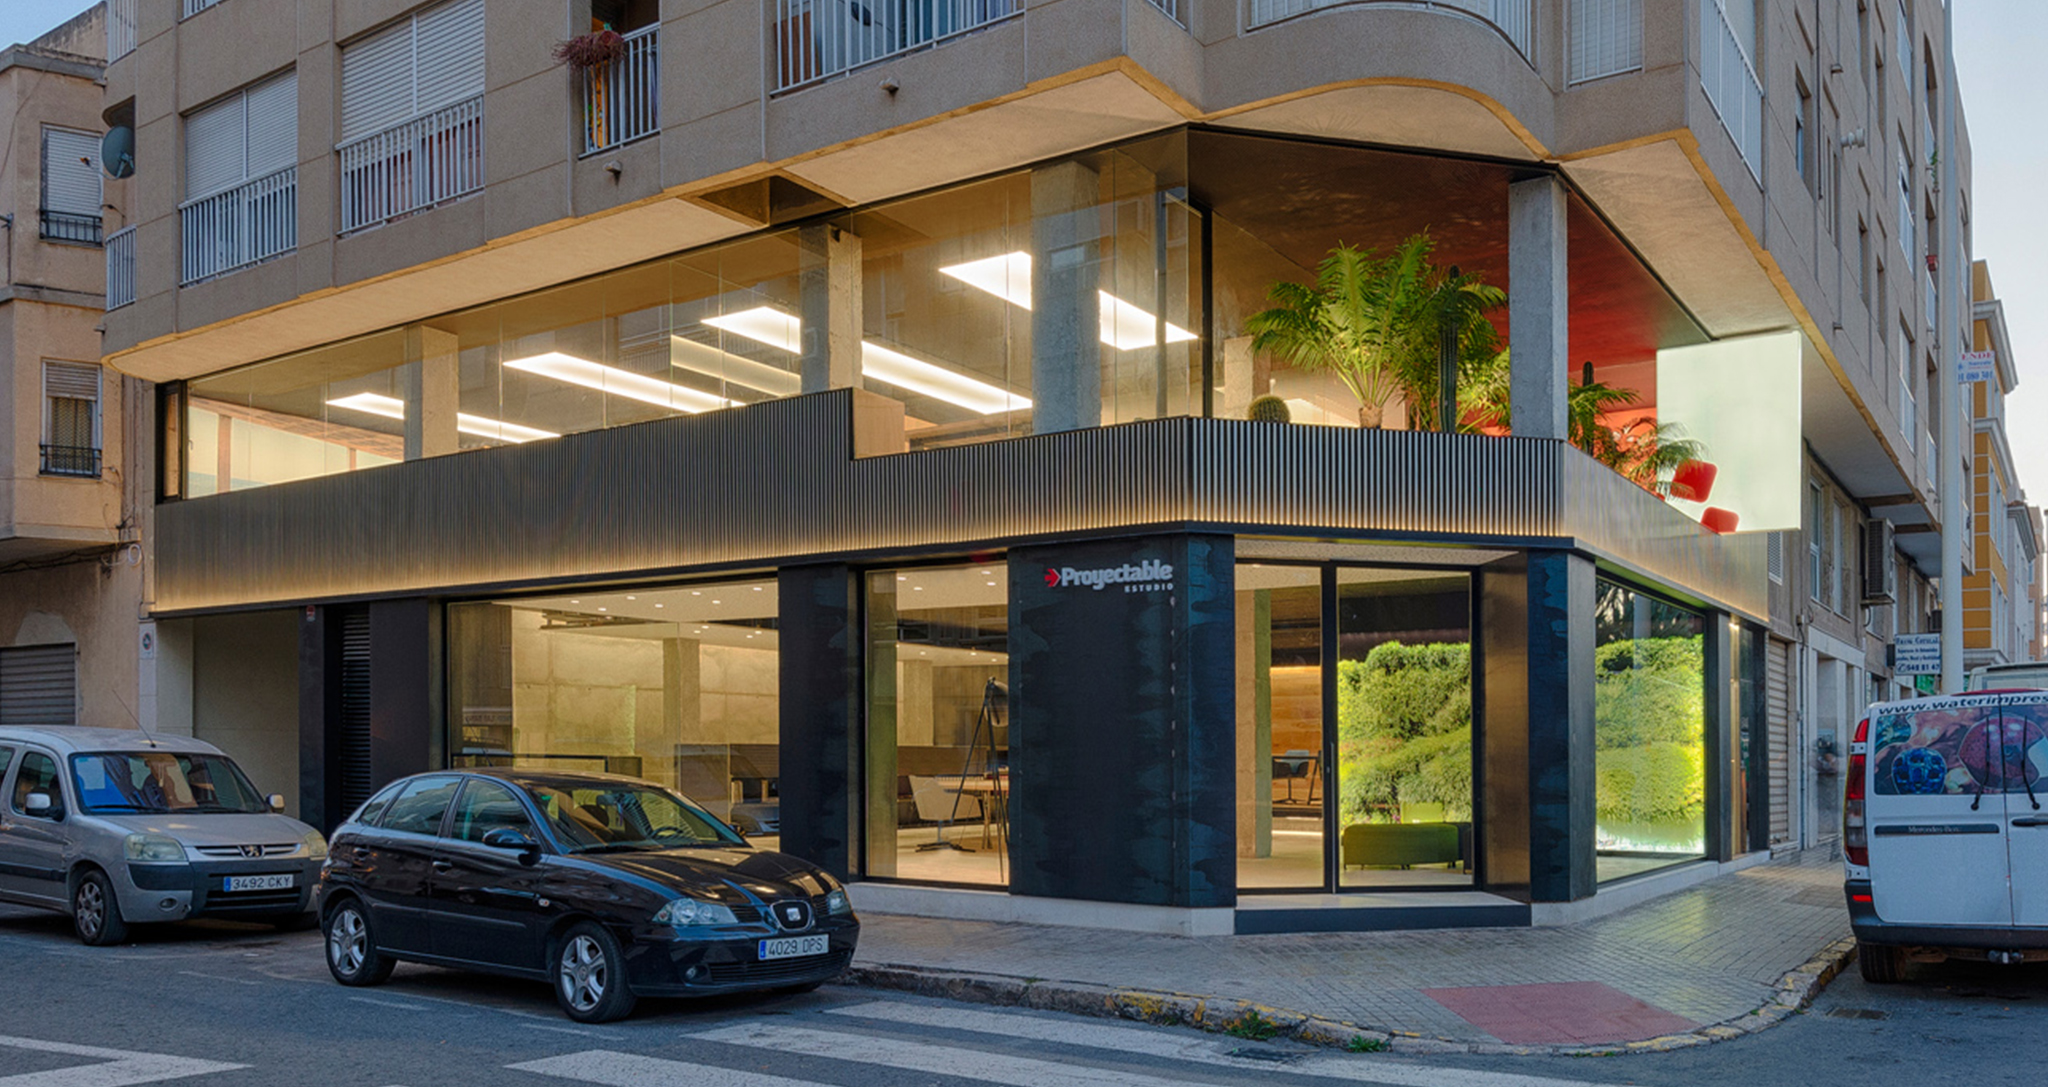 SHOW ROOM DESIGN AND REFORM OF NEW OFFICES BY ROCAMORA DISEÑO Y ARQUITECTURA, ELCHE, ALICANTE, SPAIN